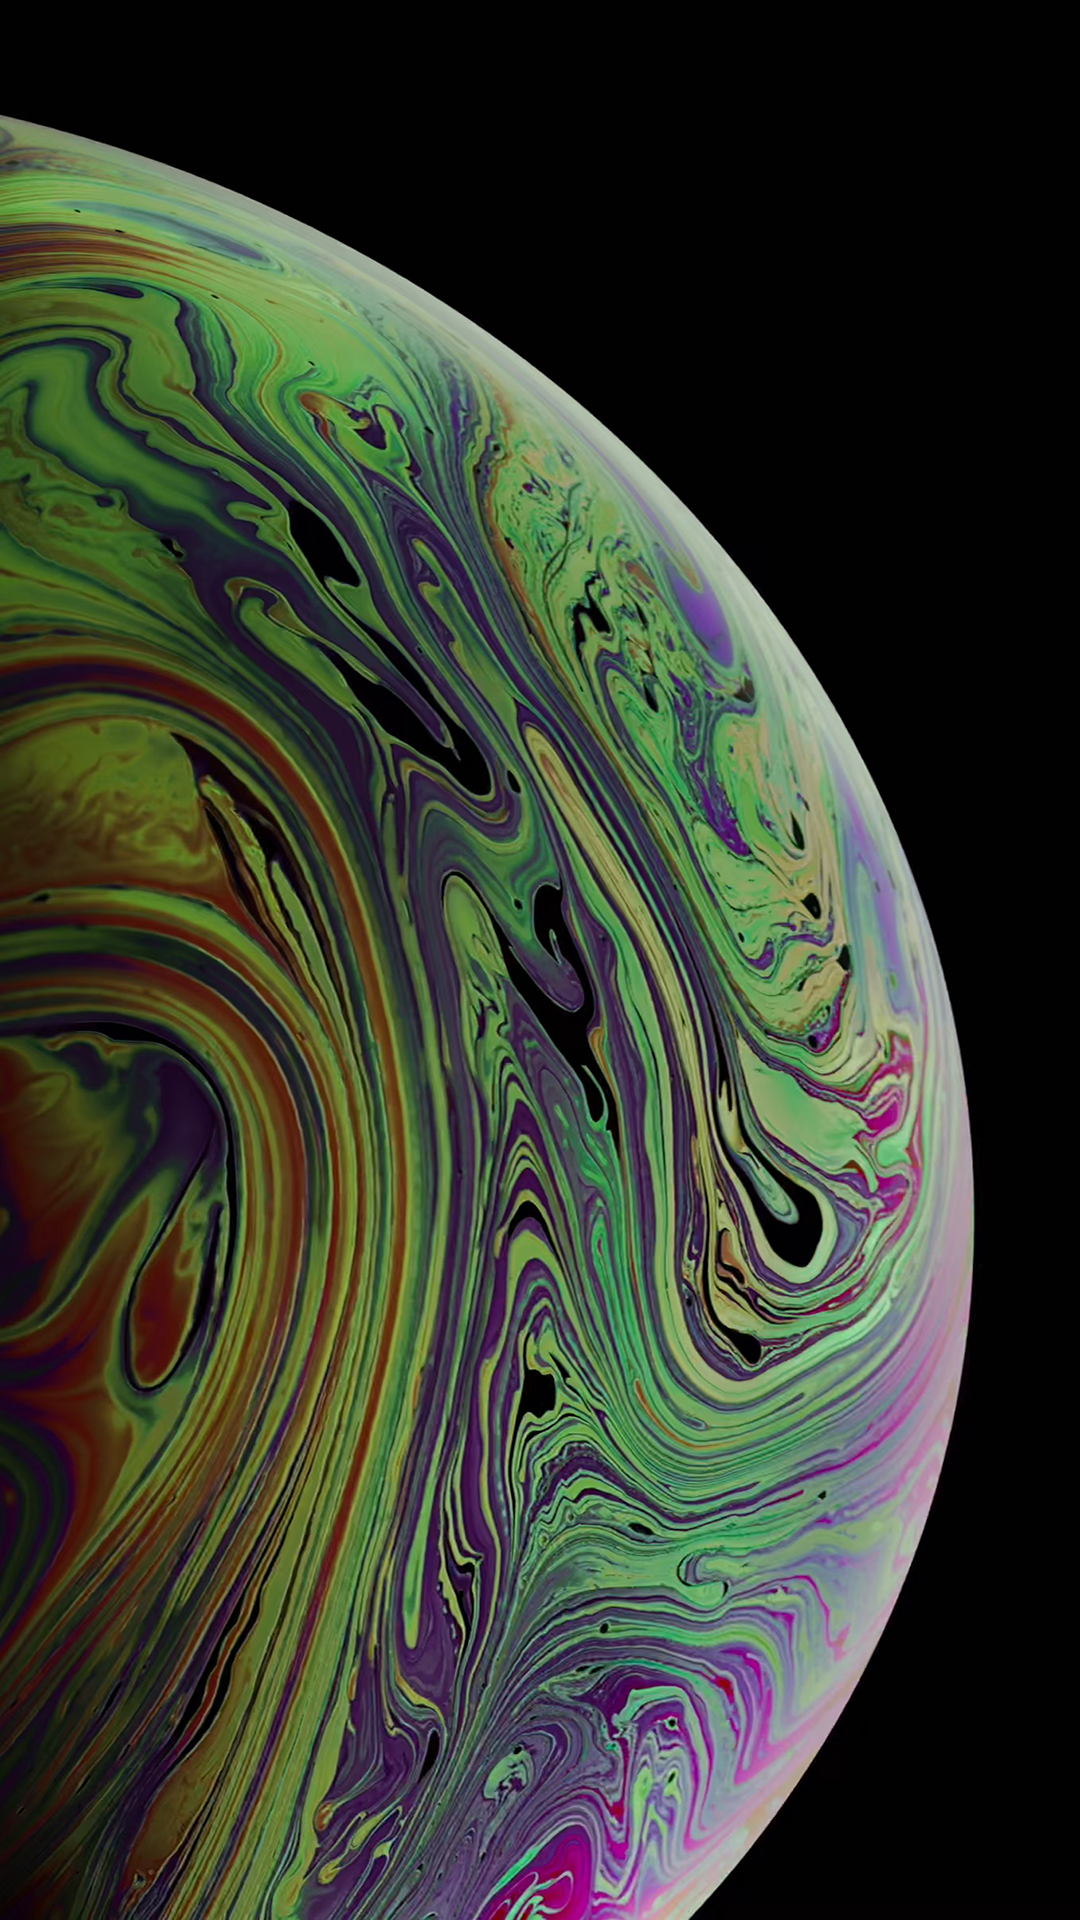 Iphone Xs Max Earth Wallpapers Hinh Nền Hinh Nền Iphone Iphone